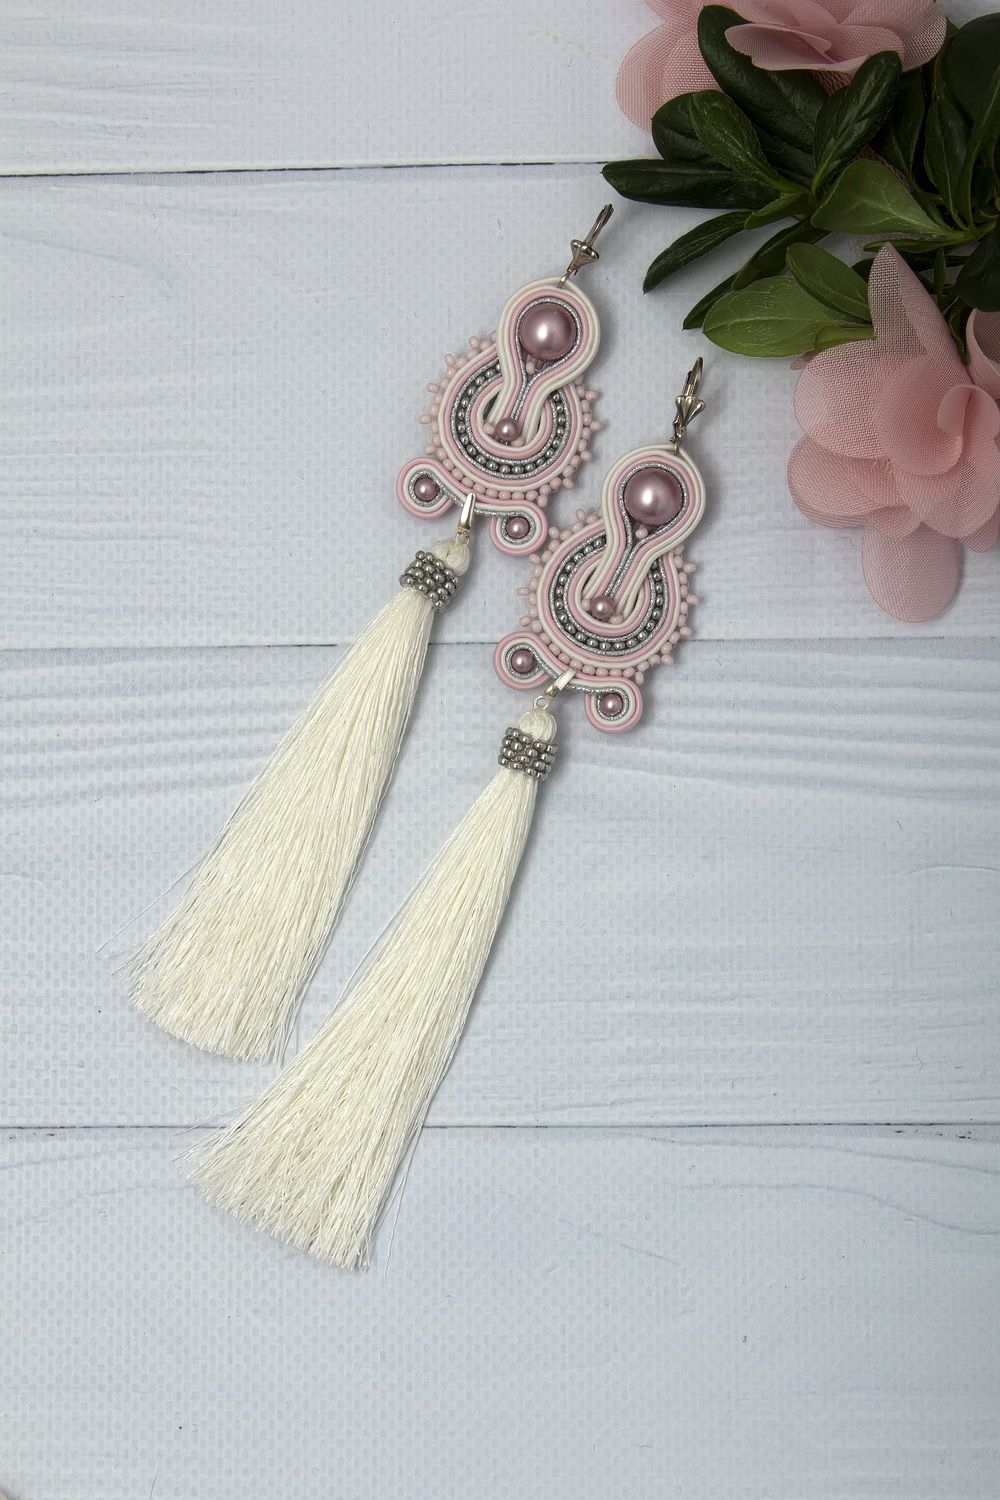 Etsy wedding jewelry drop earrings large wedding earrings wedding earrings white tassel earrings bridal earrings pearl cream earrings for bride soutache earrings arubaitofo Gallery